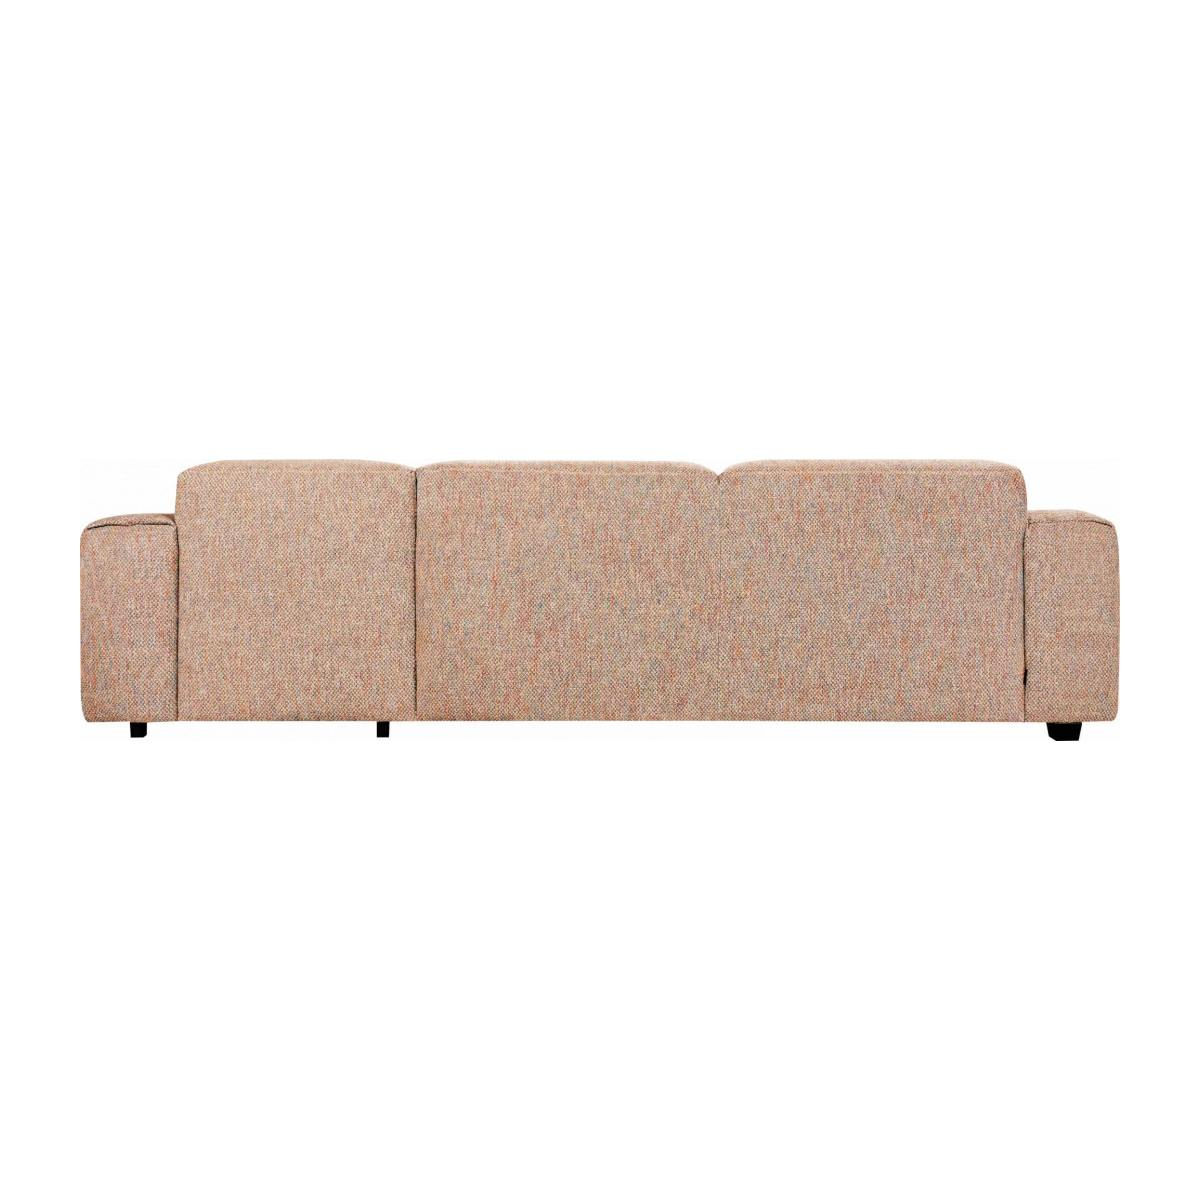 3 seater sofa with right chaise longue in Bellagio fabric, passion orange n°5